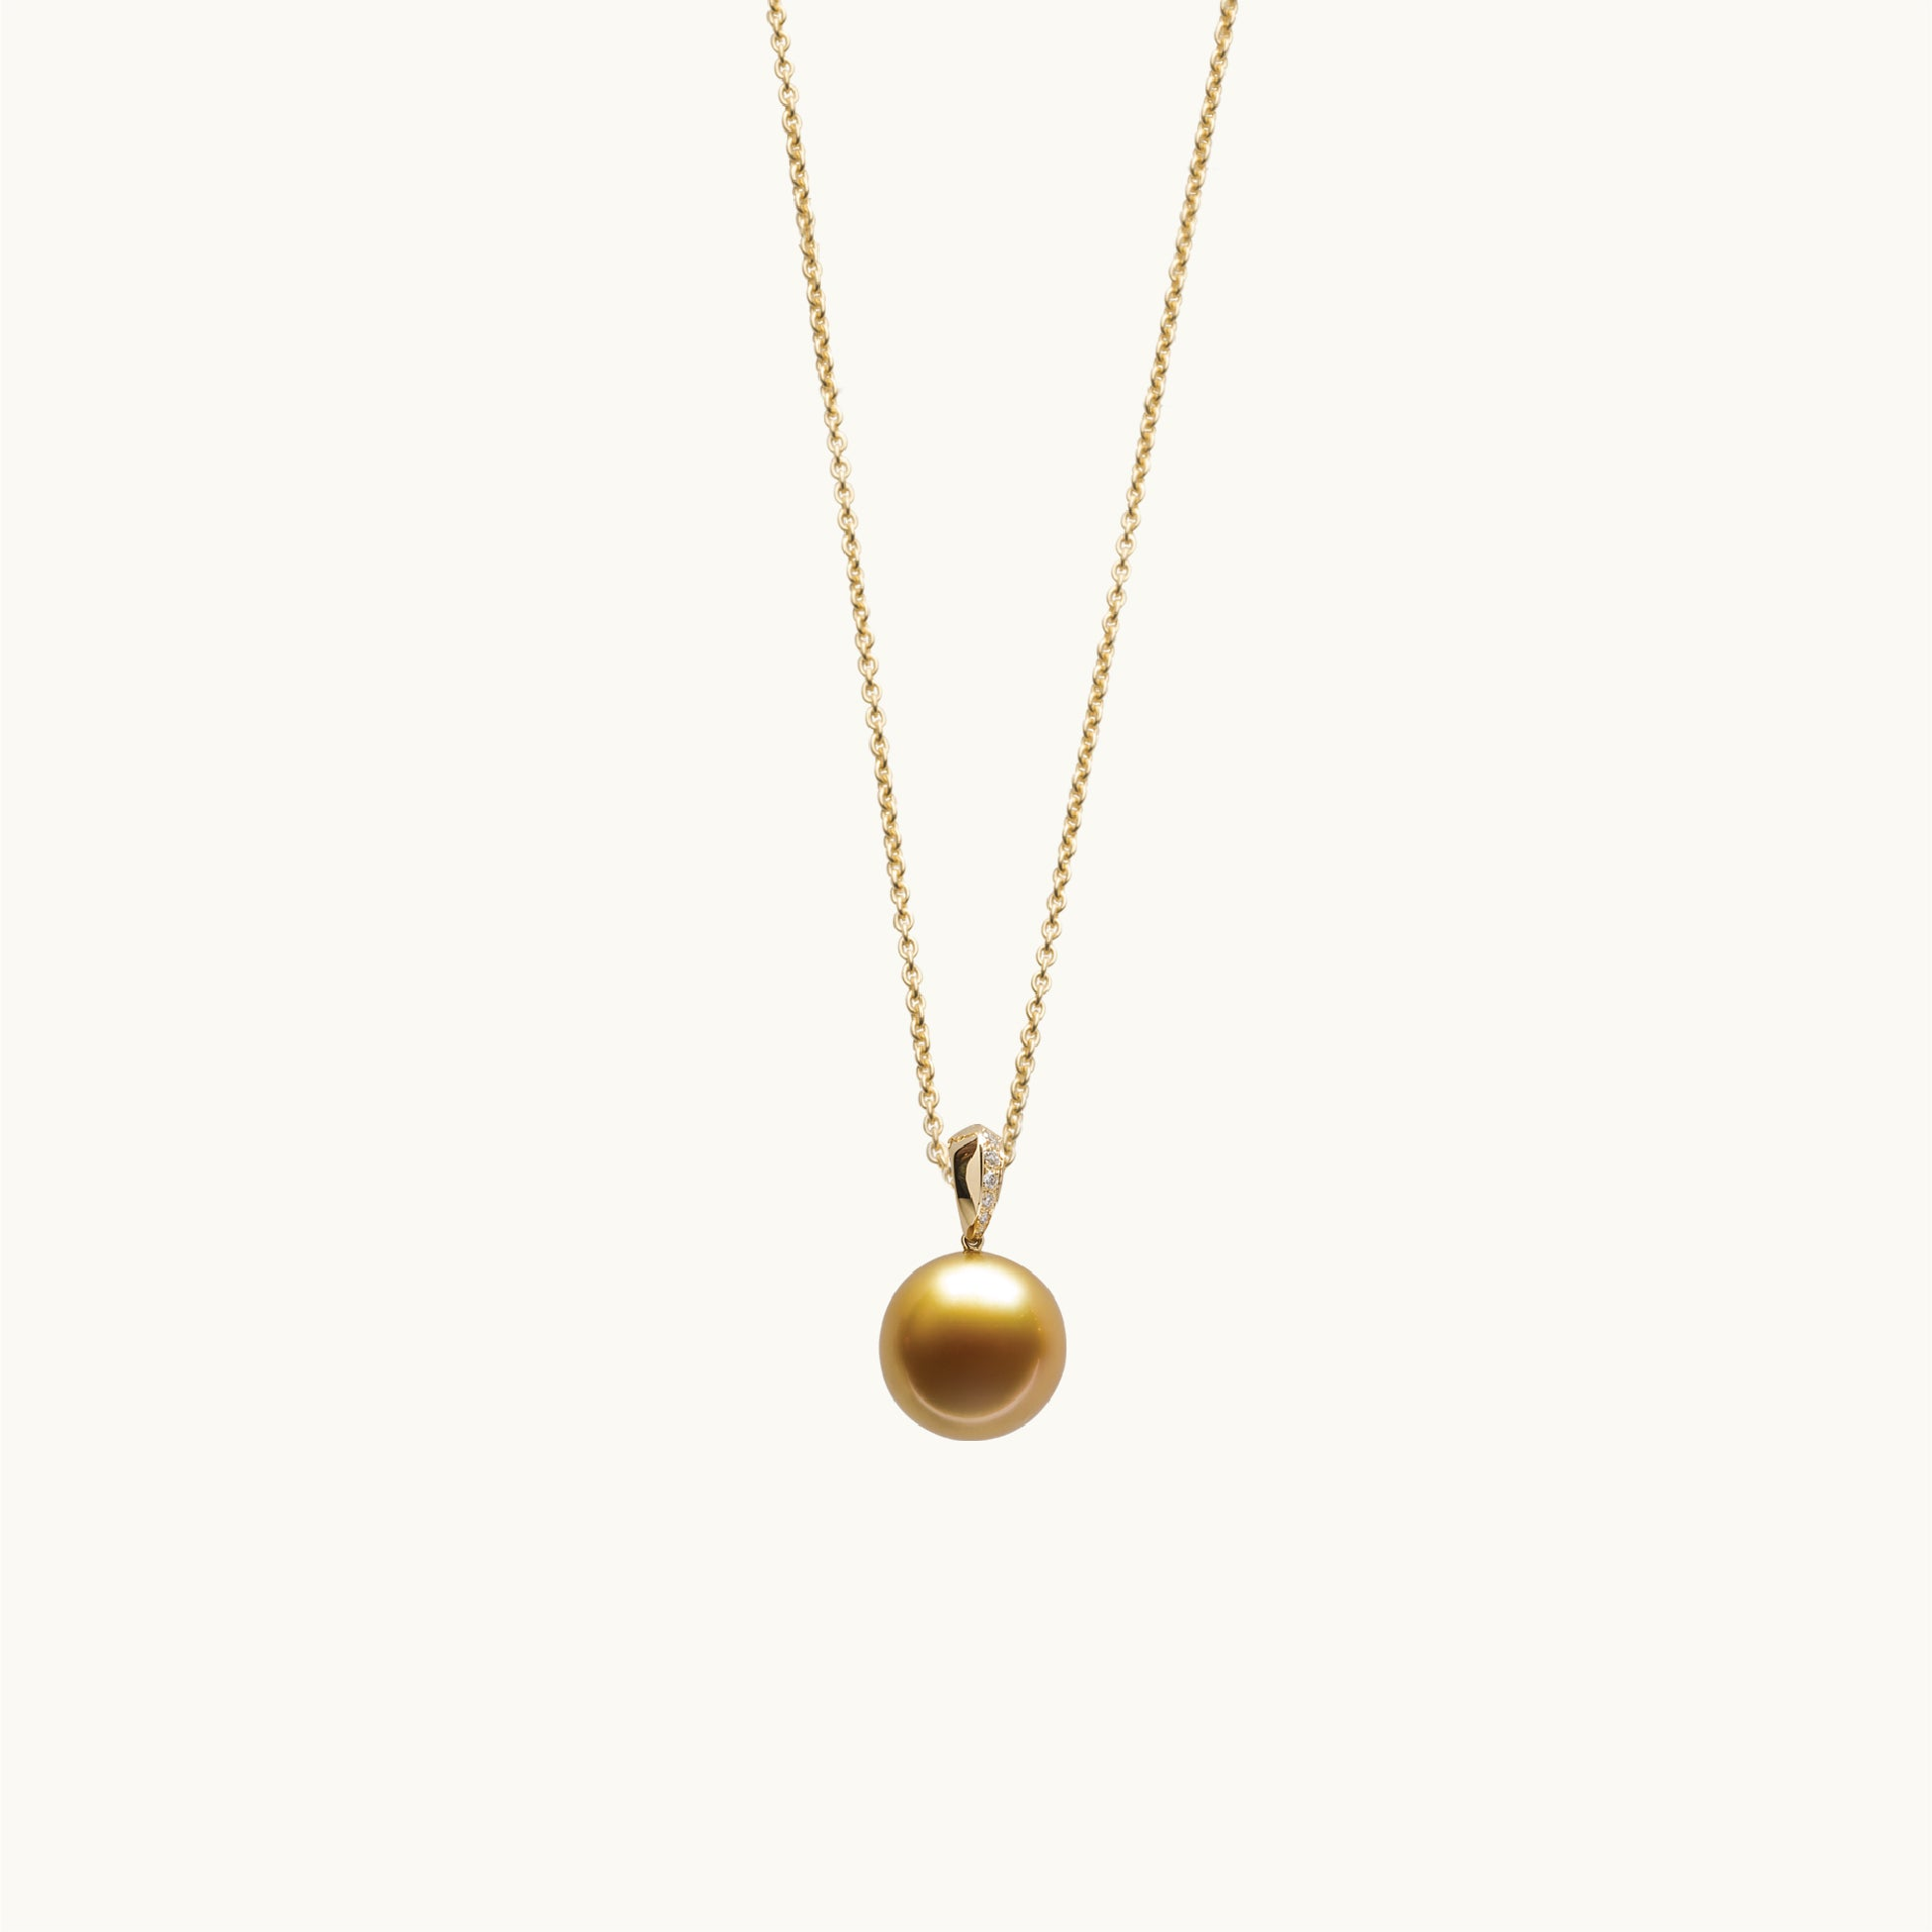 Golden Pearl & Diamond Necklace